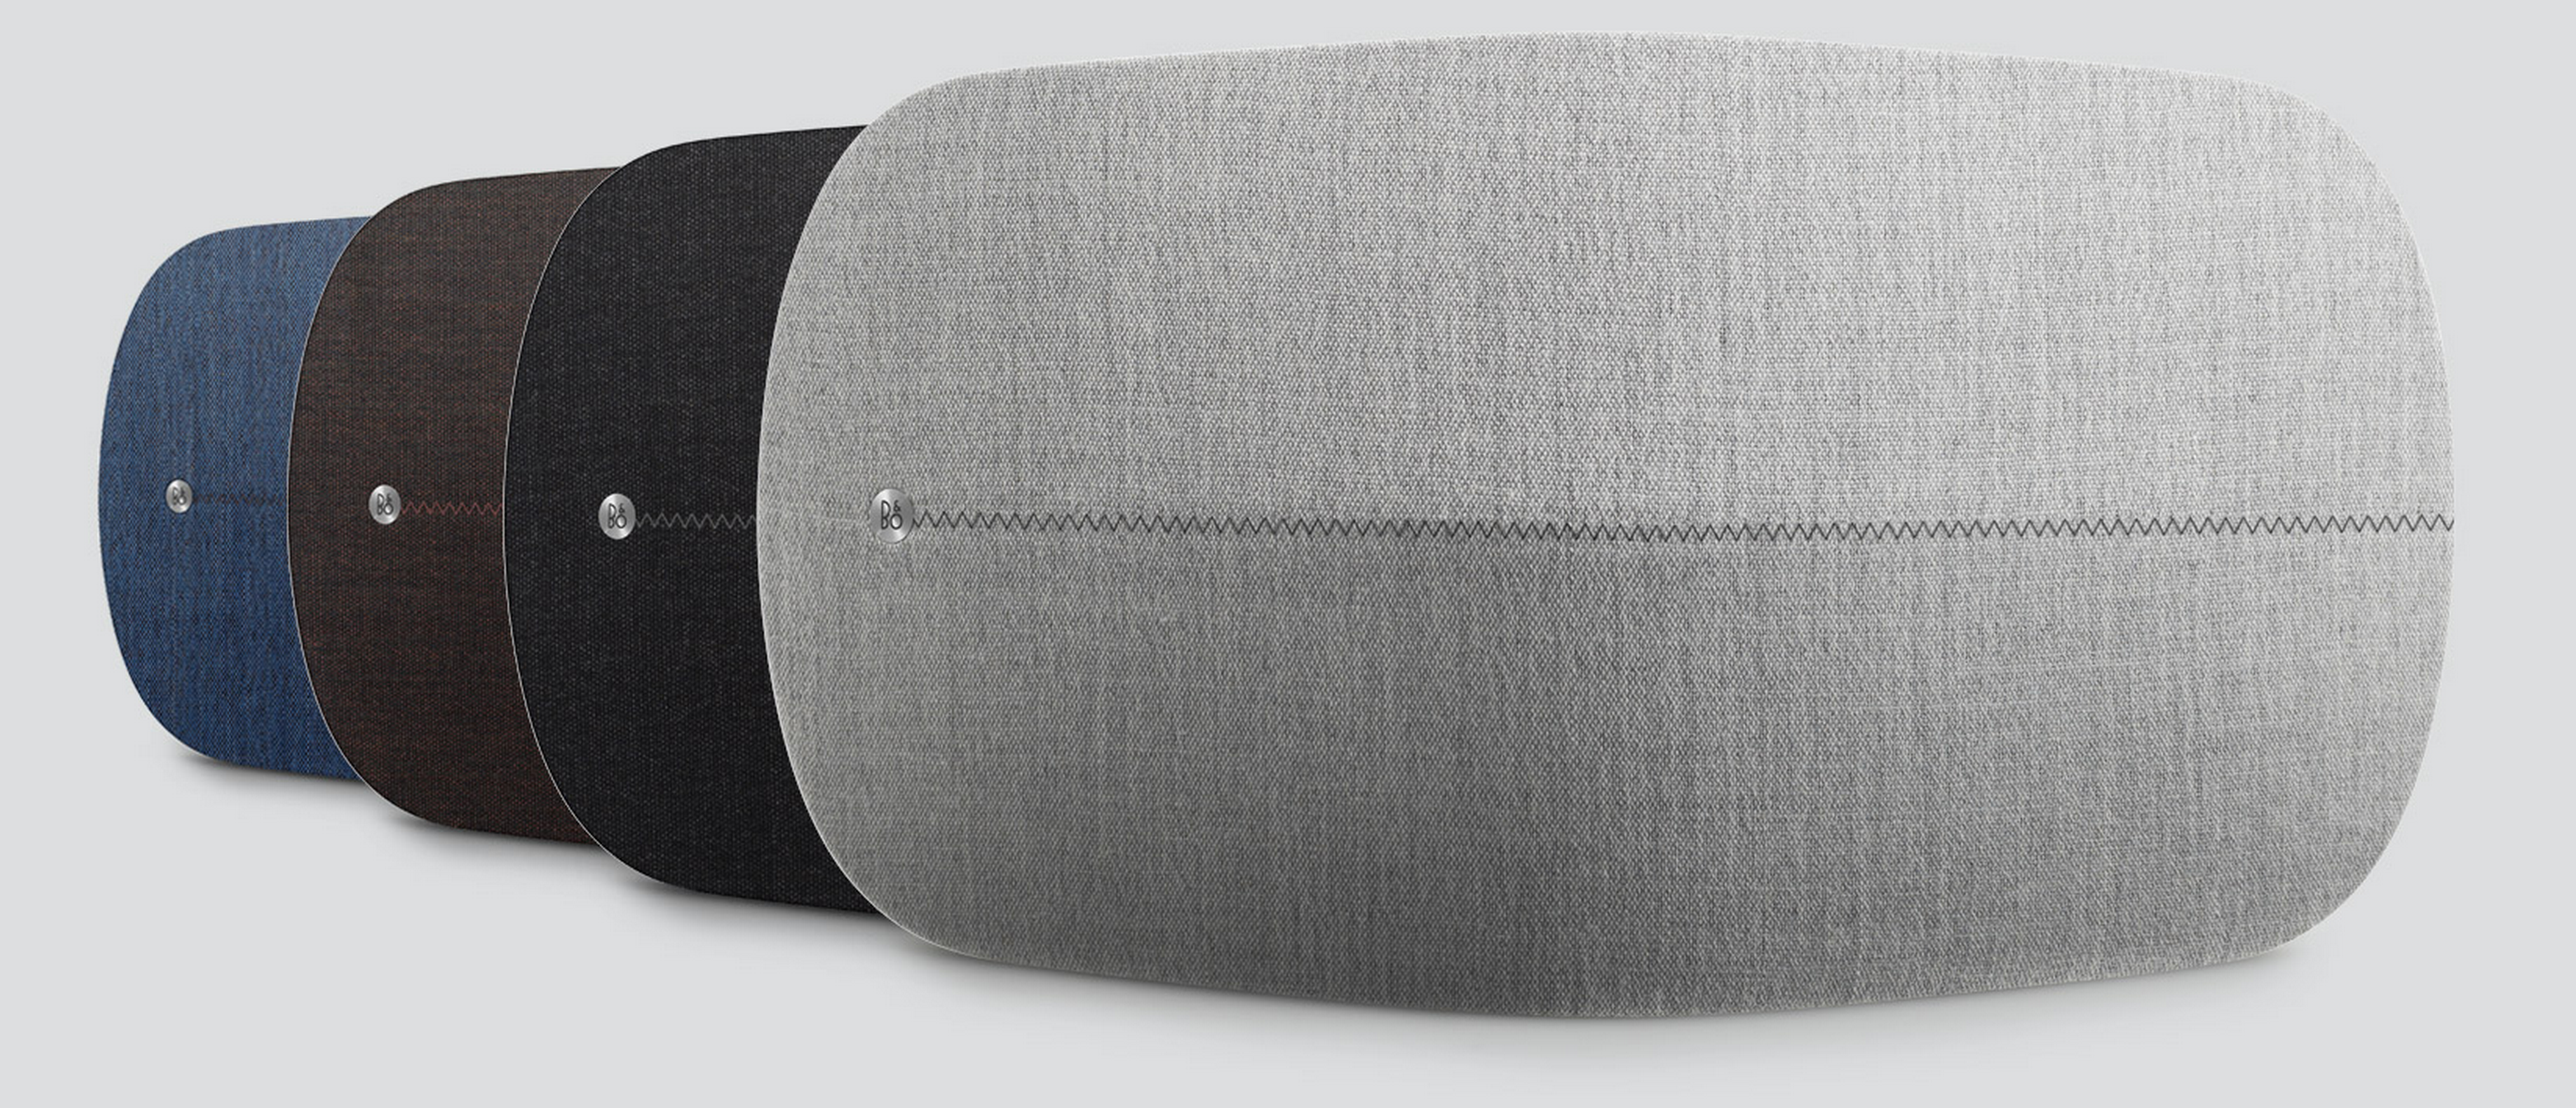 bang-olufsen-a6-release